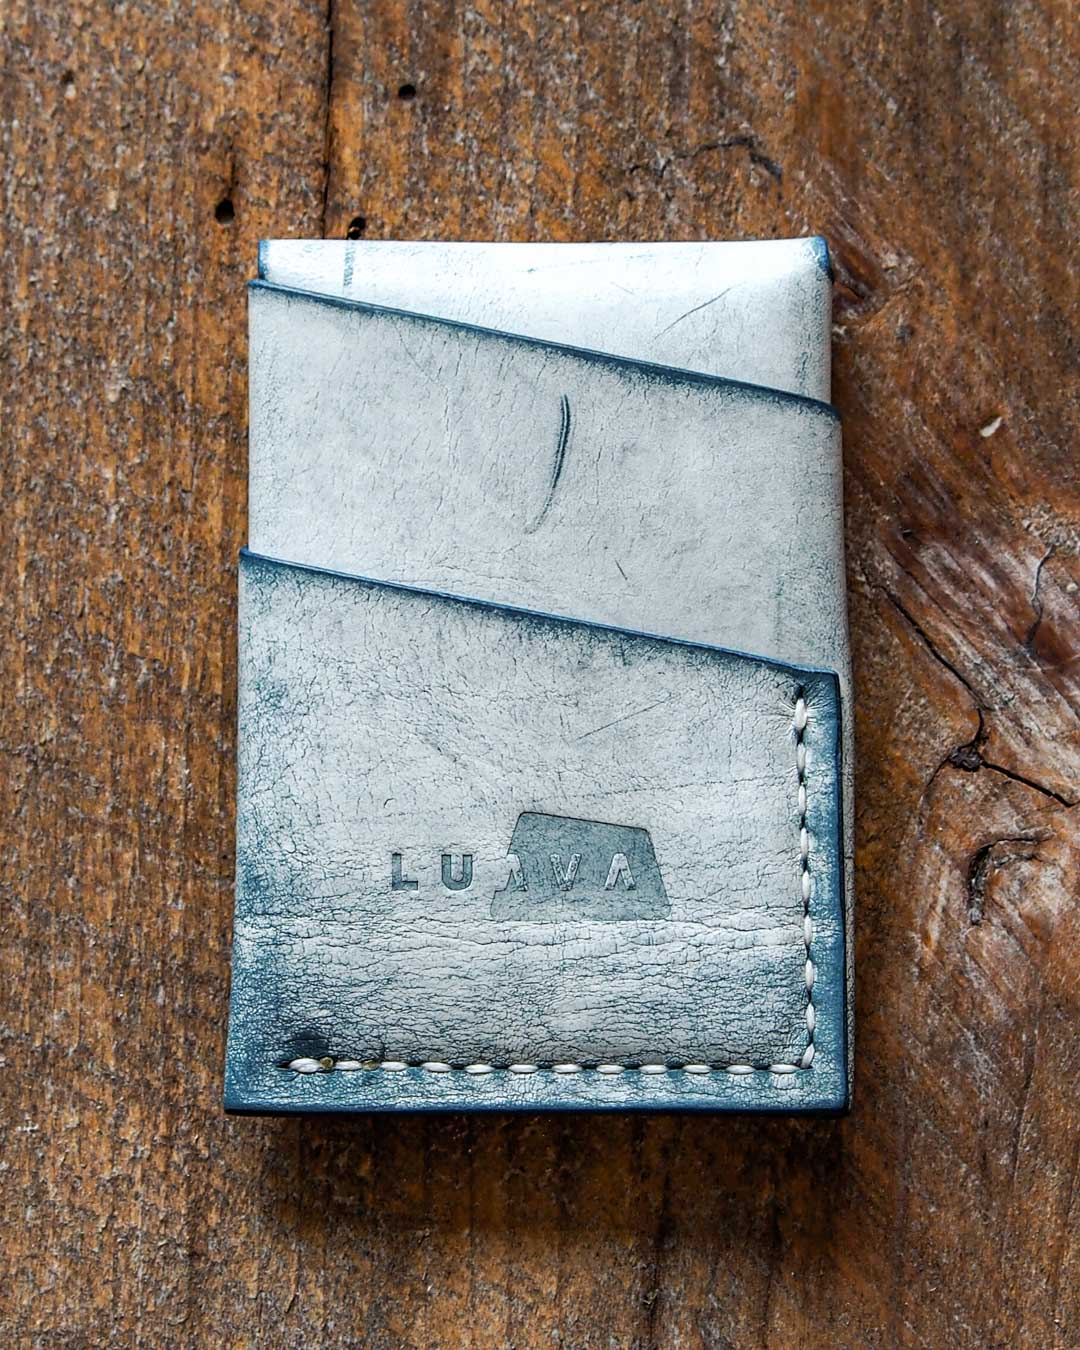 Luava handcrafted leather overfold wallet ghost ocean conceria la bretagna cardholder card holder handmade in finland back closed